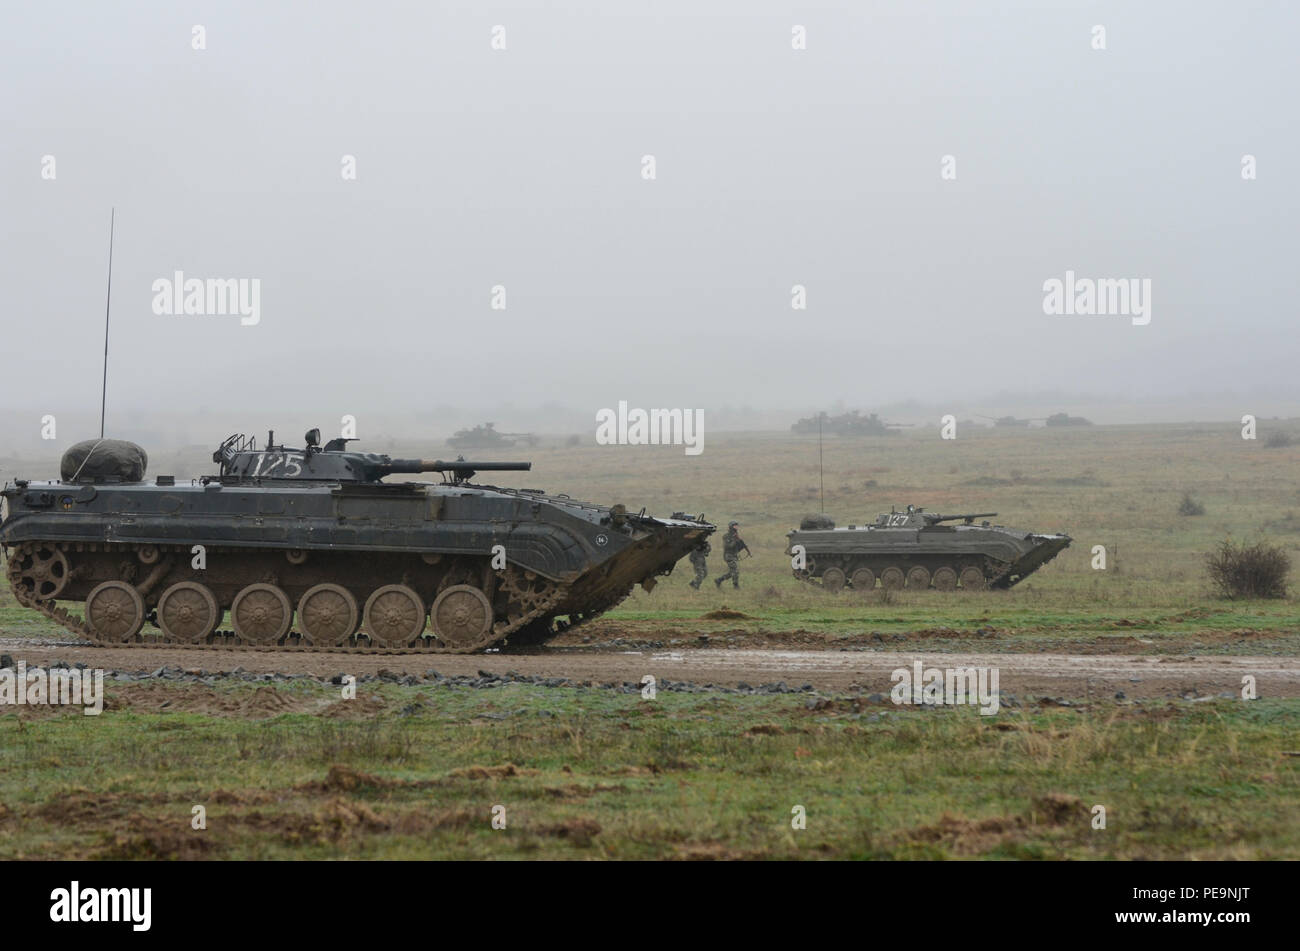 Bulgarian soldiers of 1-61st Mechanized Battalion follow along the side of Boyevaya Mashina Pekhoty 1's (BMP -1) through the wet and muddy terrain during Exercise Peace Sentinel at Novo Selo Training Center, Bulgaria, Nov. 24, 2015. (U.S. Army photo by Staff Sgt. Steven M. Colvin/Released) - Stock Image